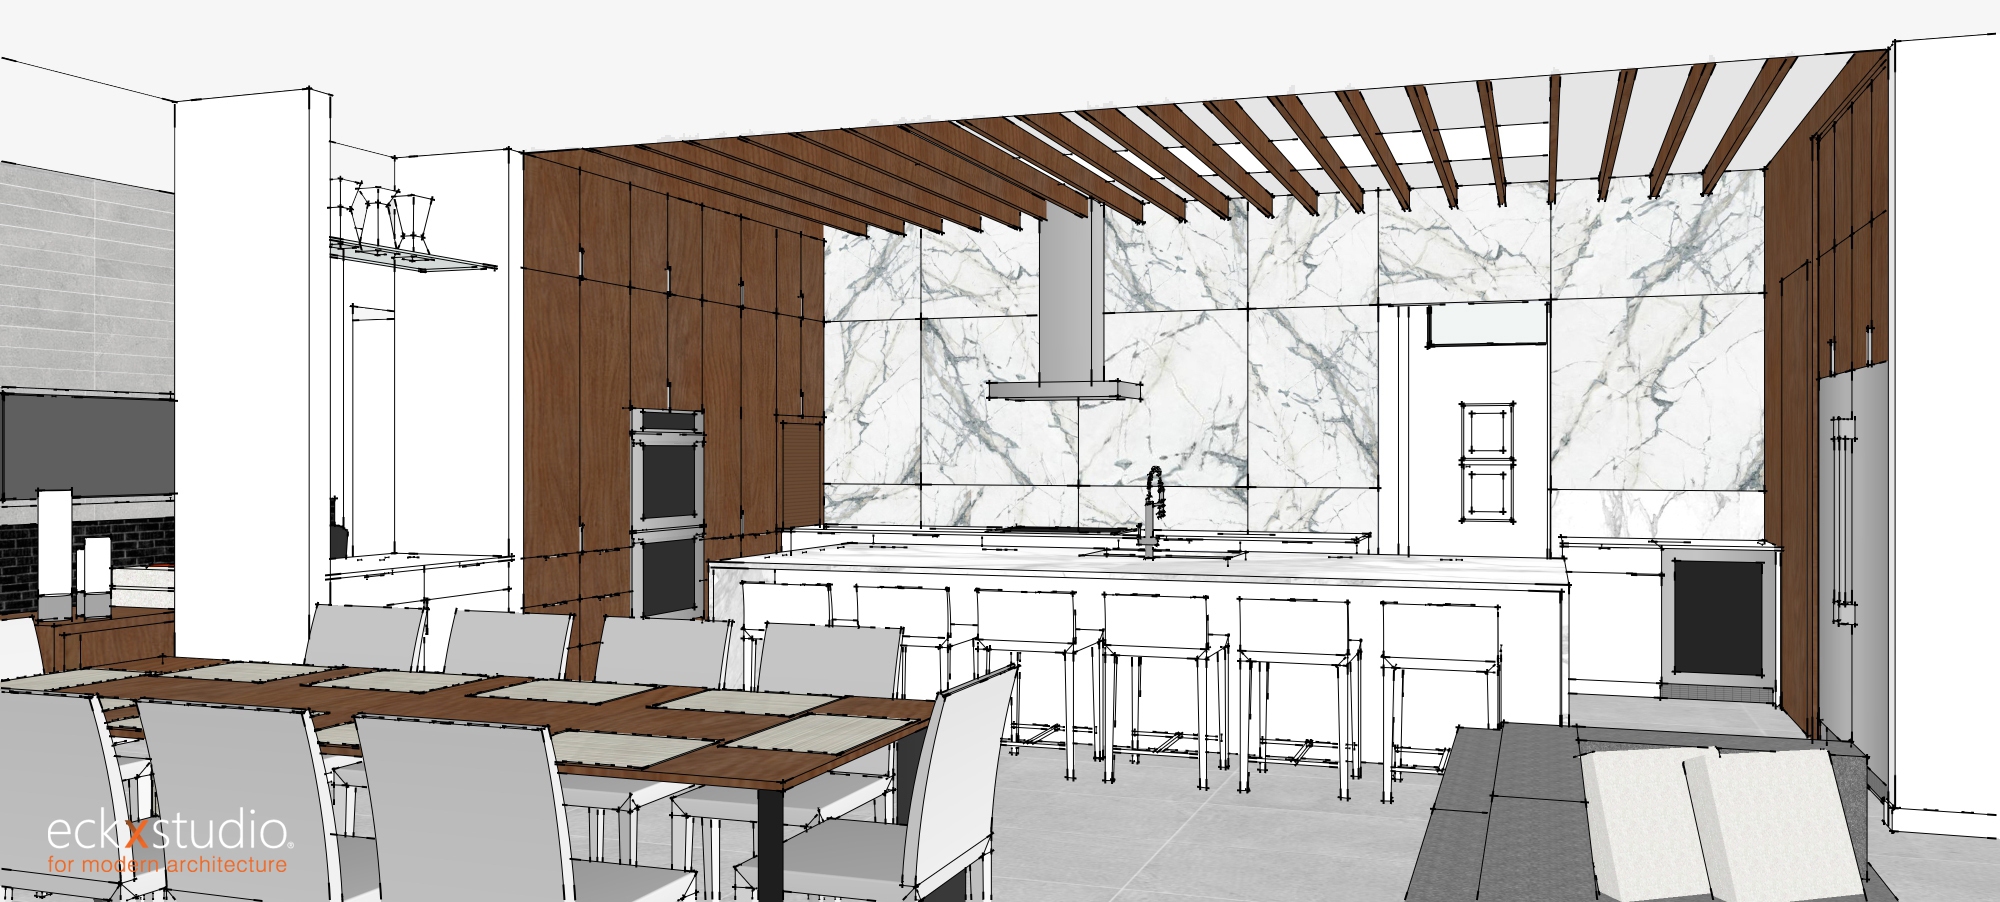 riverview_kitchen_rendering